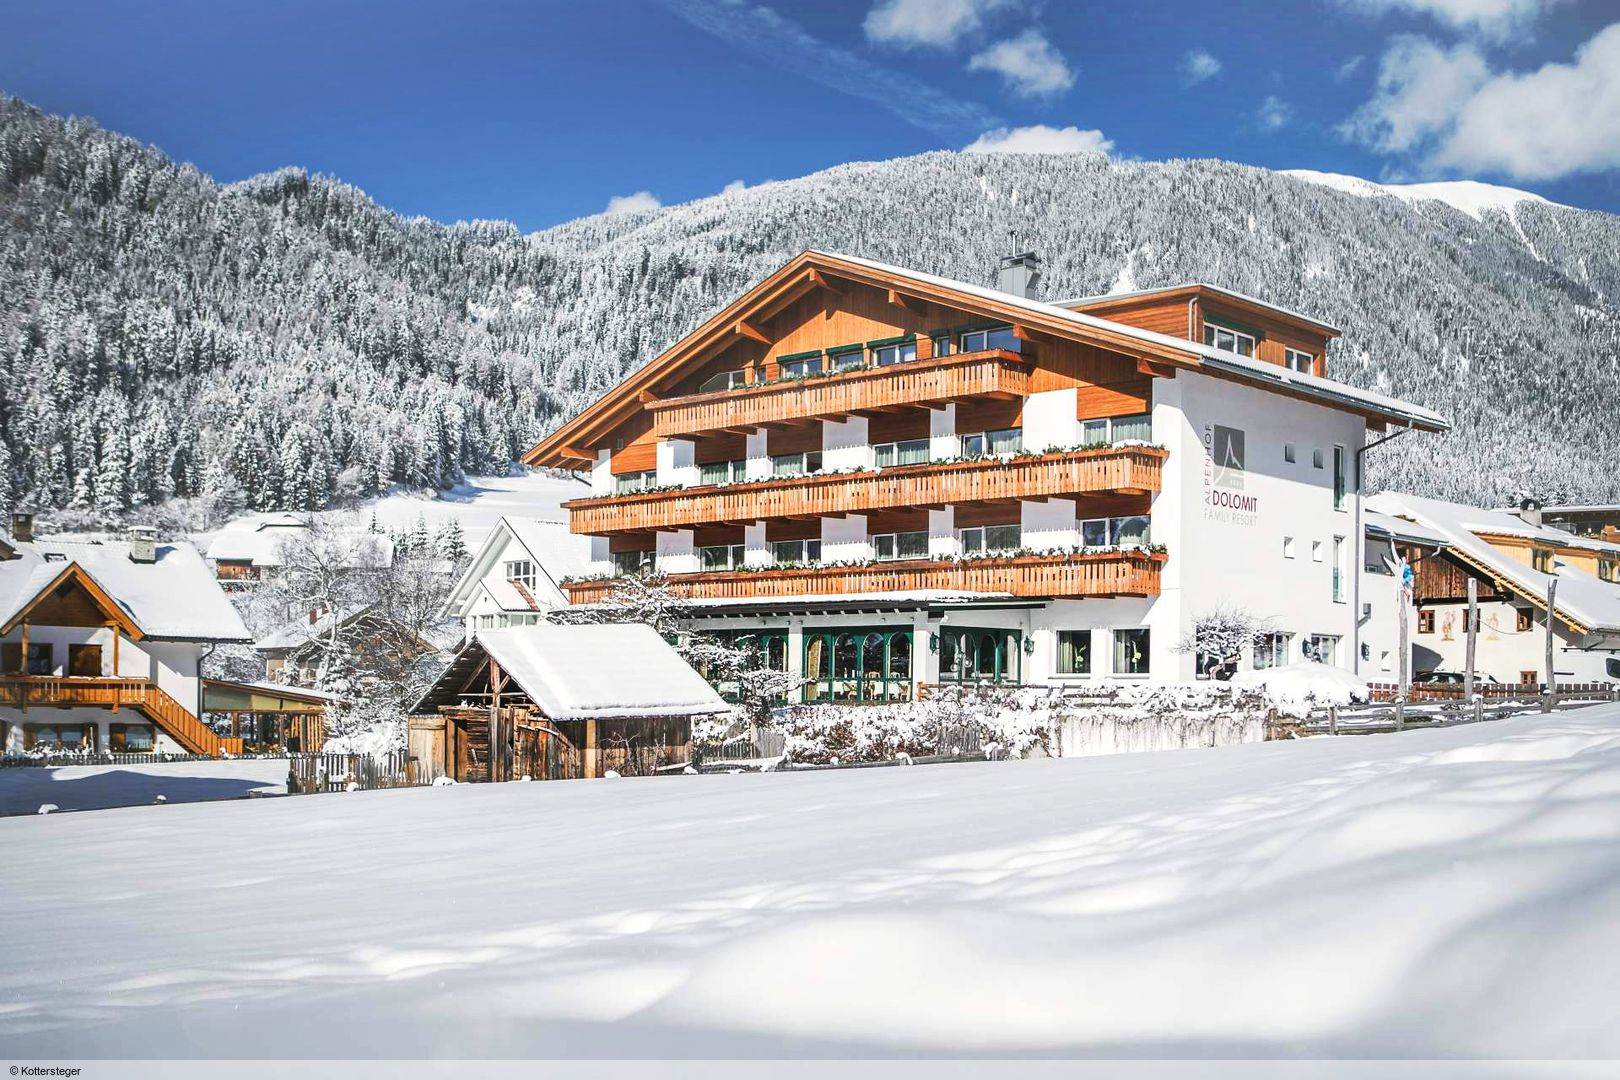 Hotel Alpenhof Dolomit Family Resort